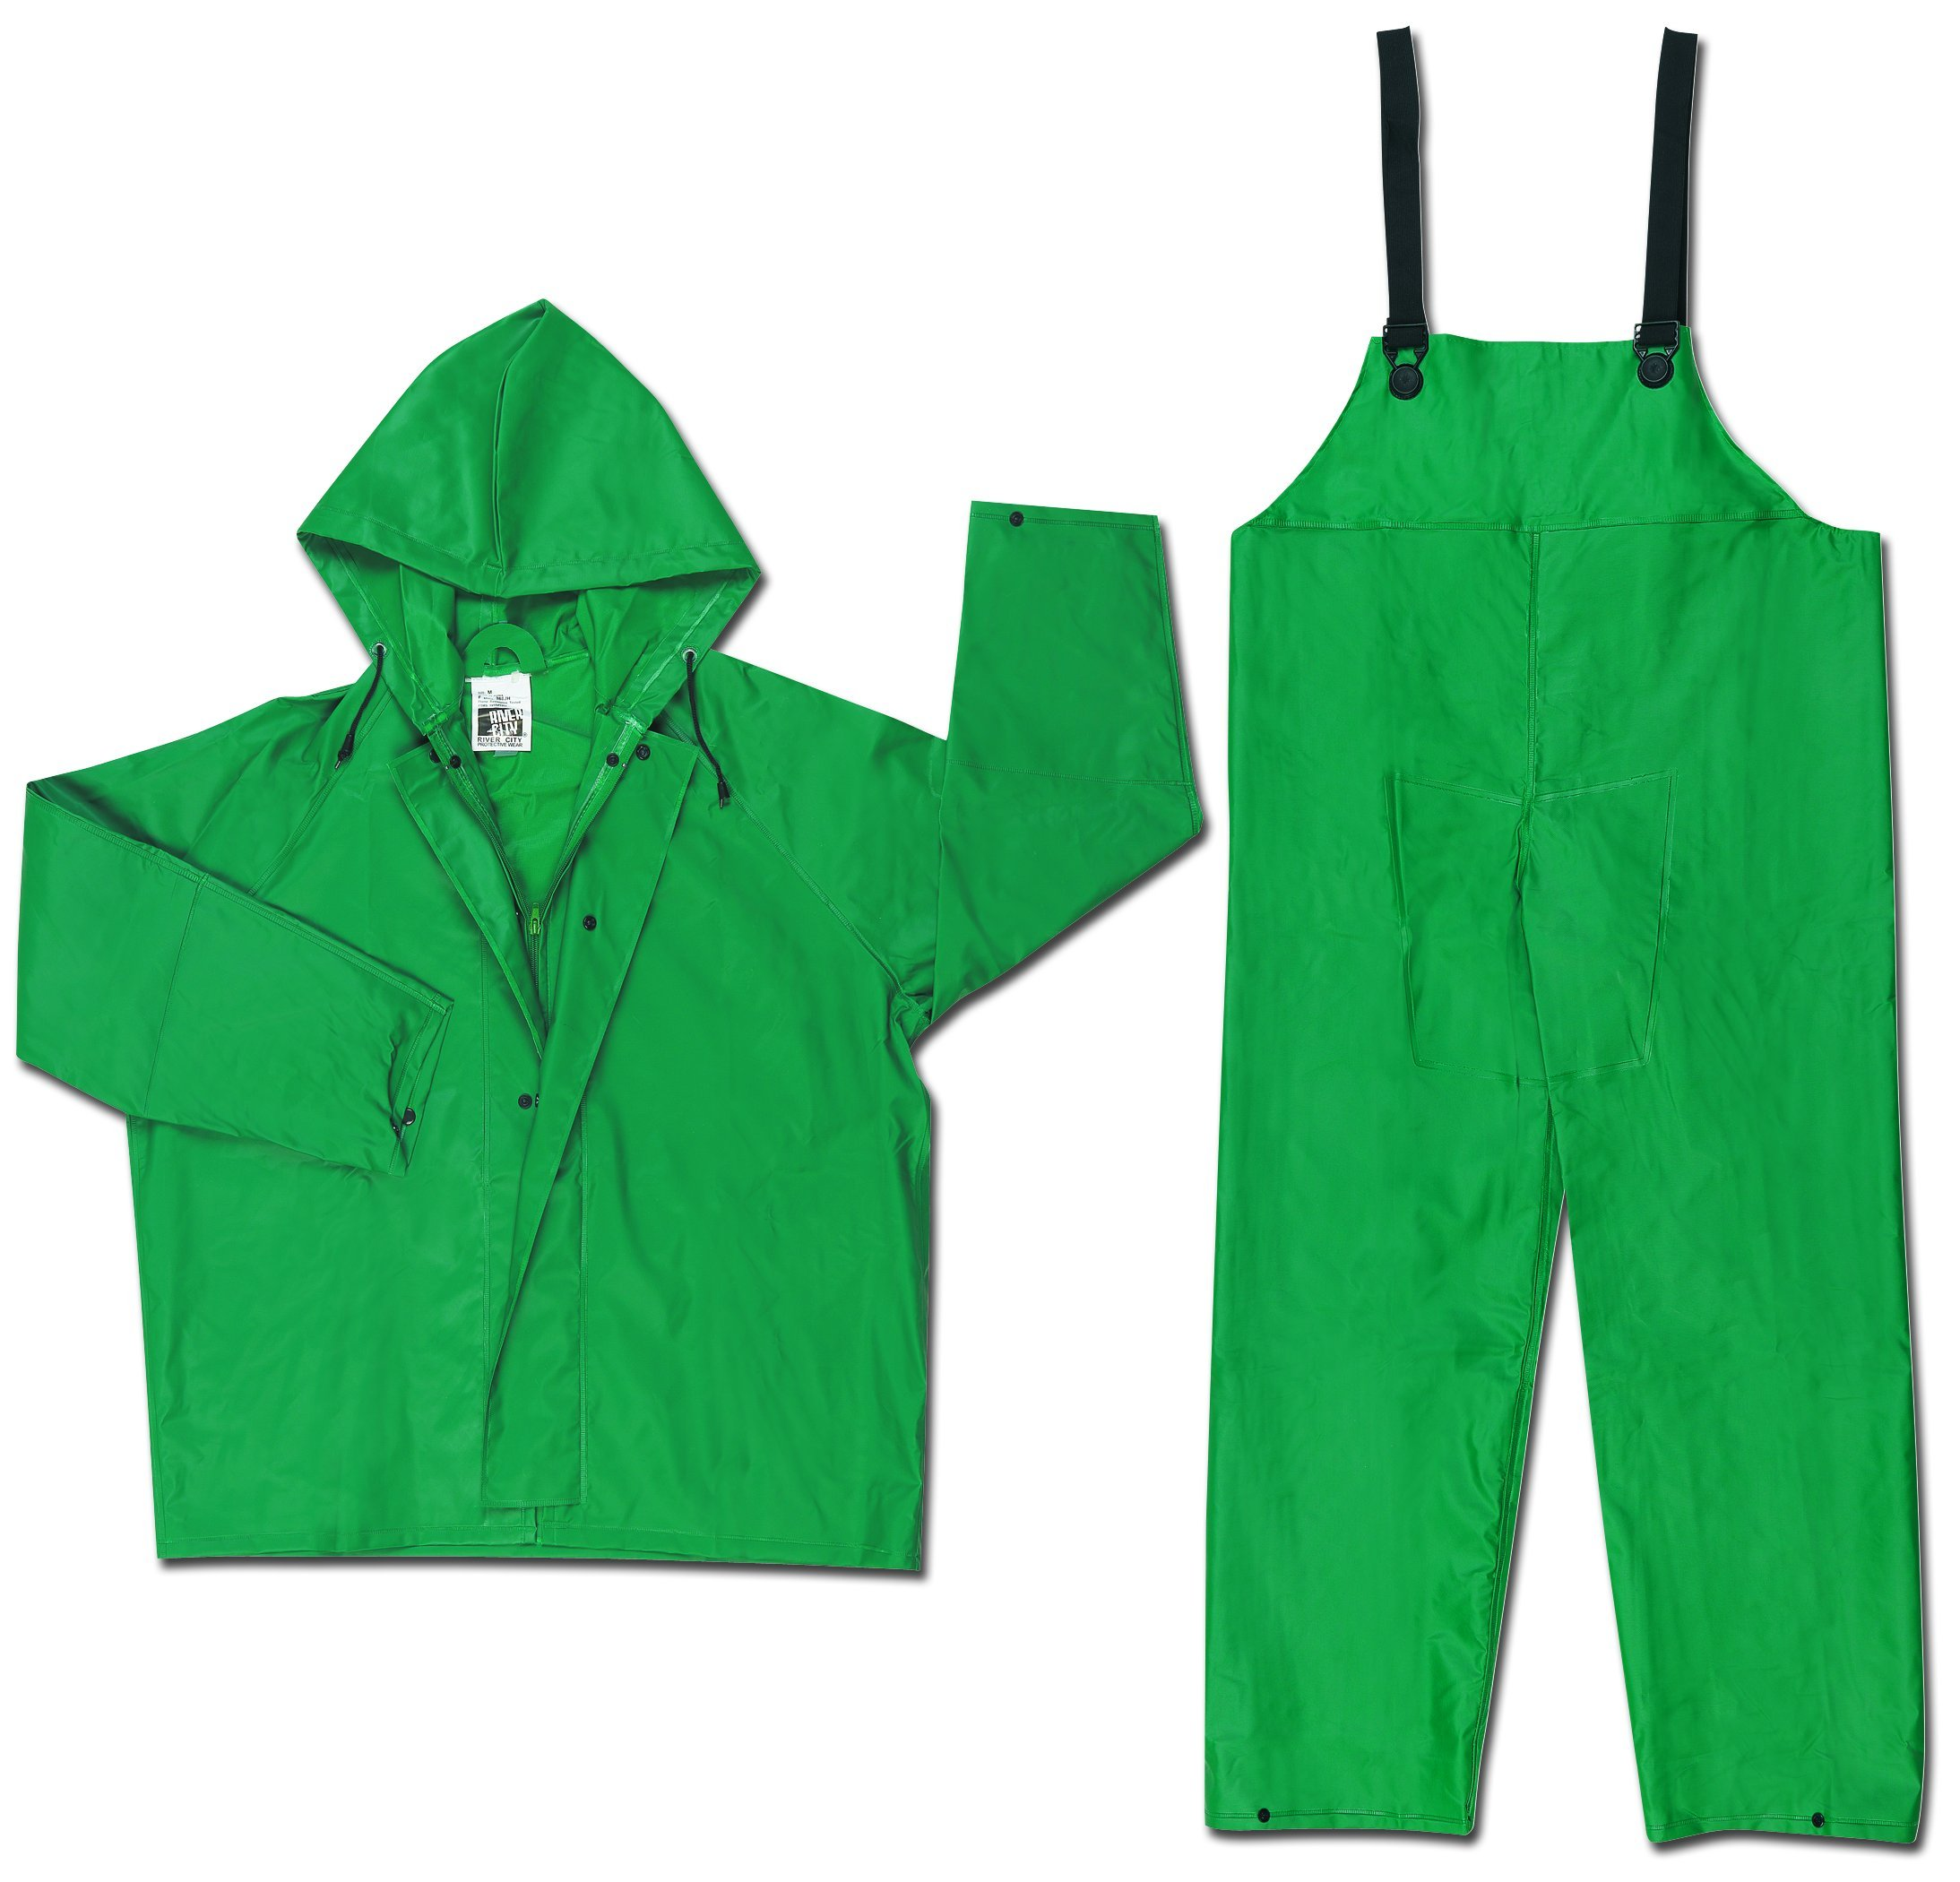 MCR Safety 3882X7 Dominator PVC/Polyester 2-Piece Rainsuit with Attached Drawstring Hood, Green, 7X-Large by MCR Safety (Image #1)